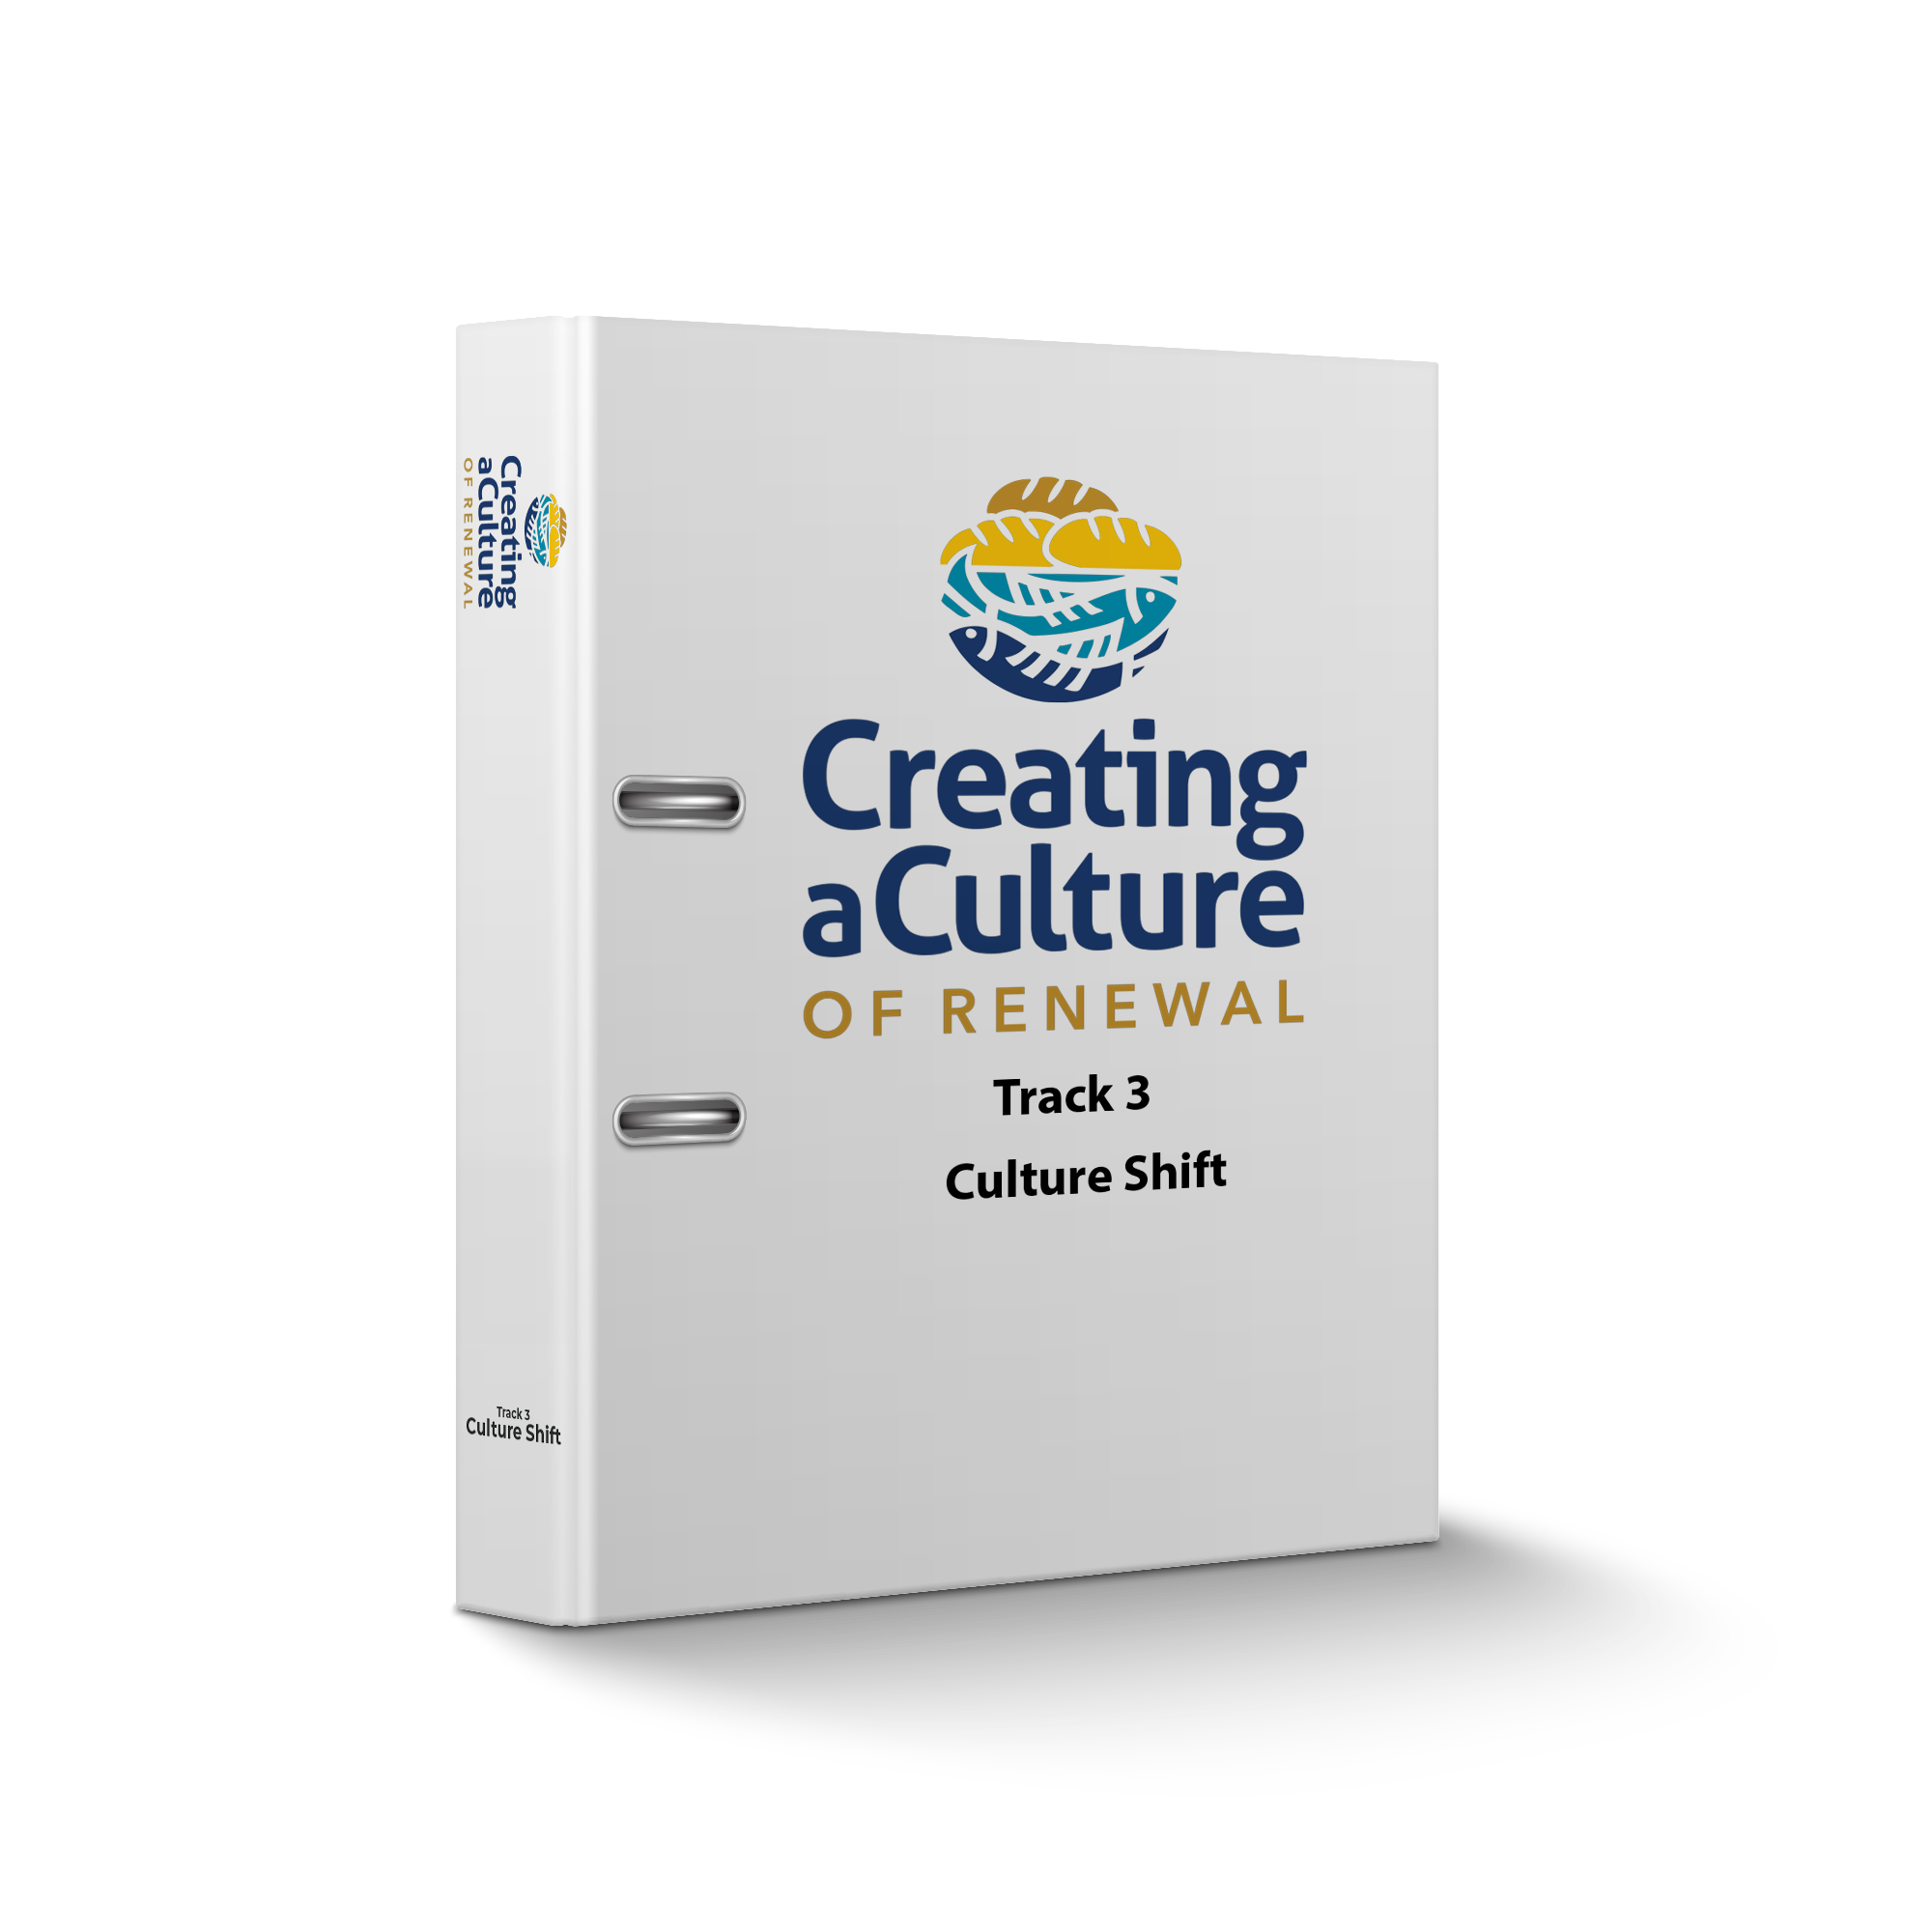 Creating-a-Culture-of-Renewal-Work-Book mock up T3